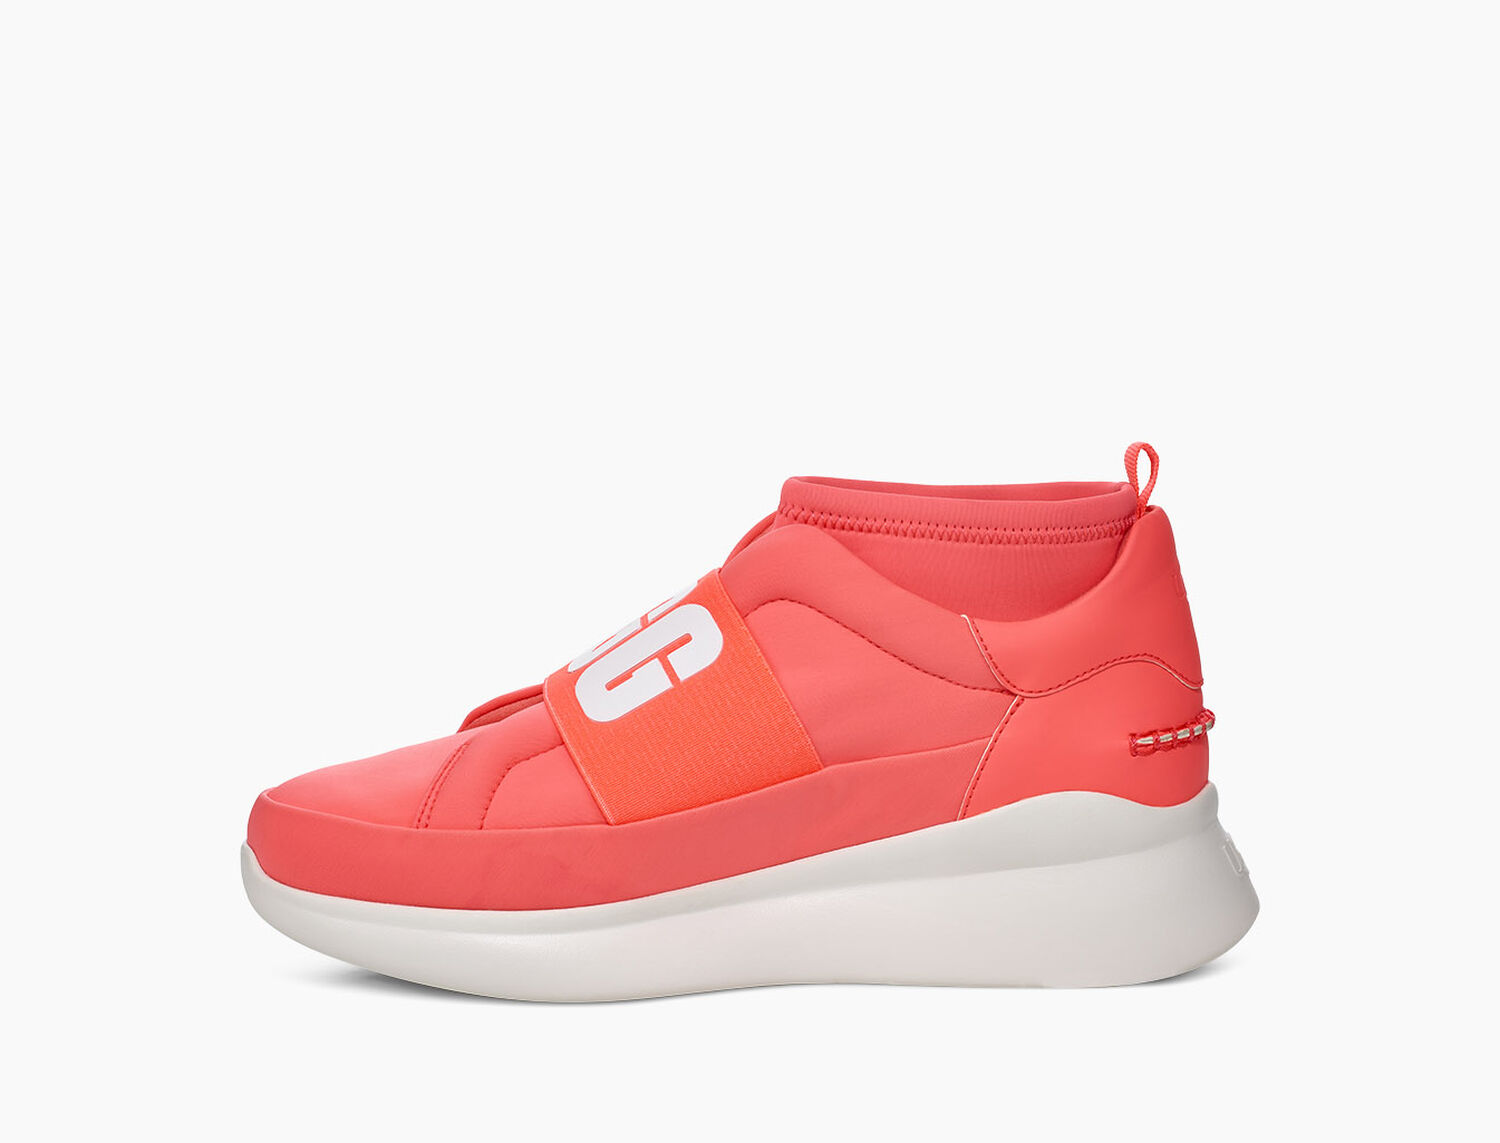 e691dbaeac8 Women's Share this product Neutra Sneaker